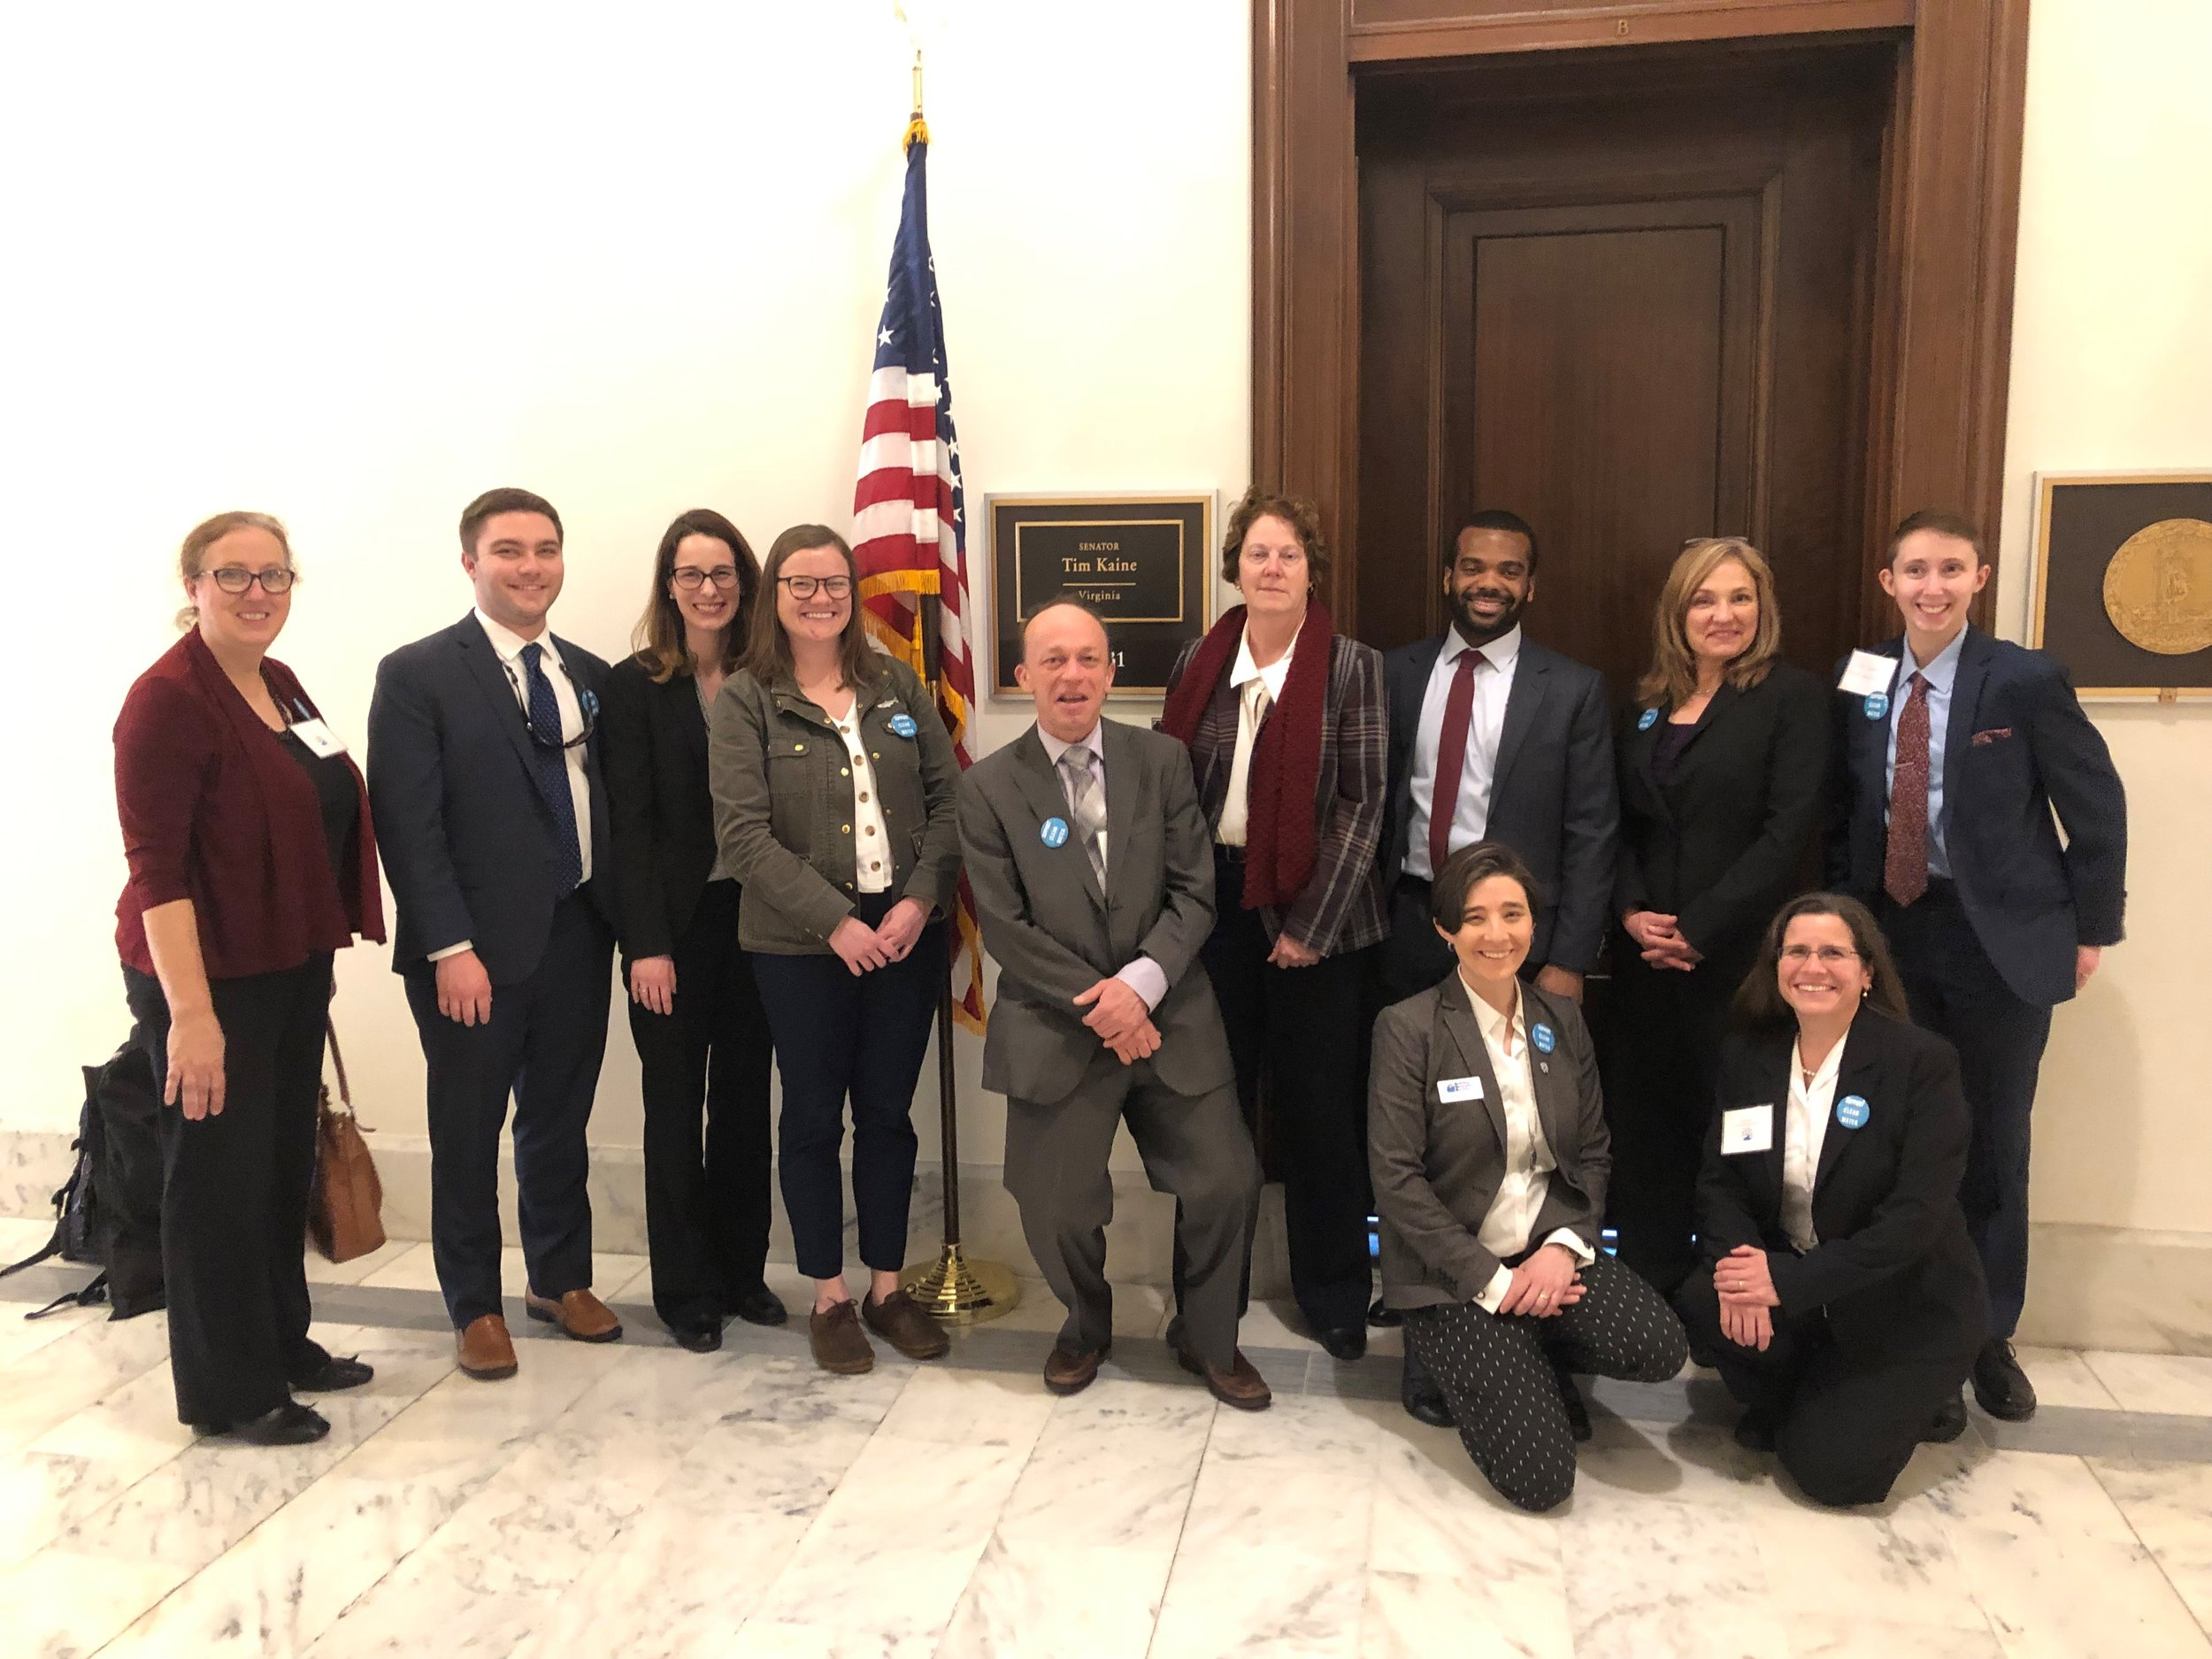 Virginia members meeting with Senator Kaine's office